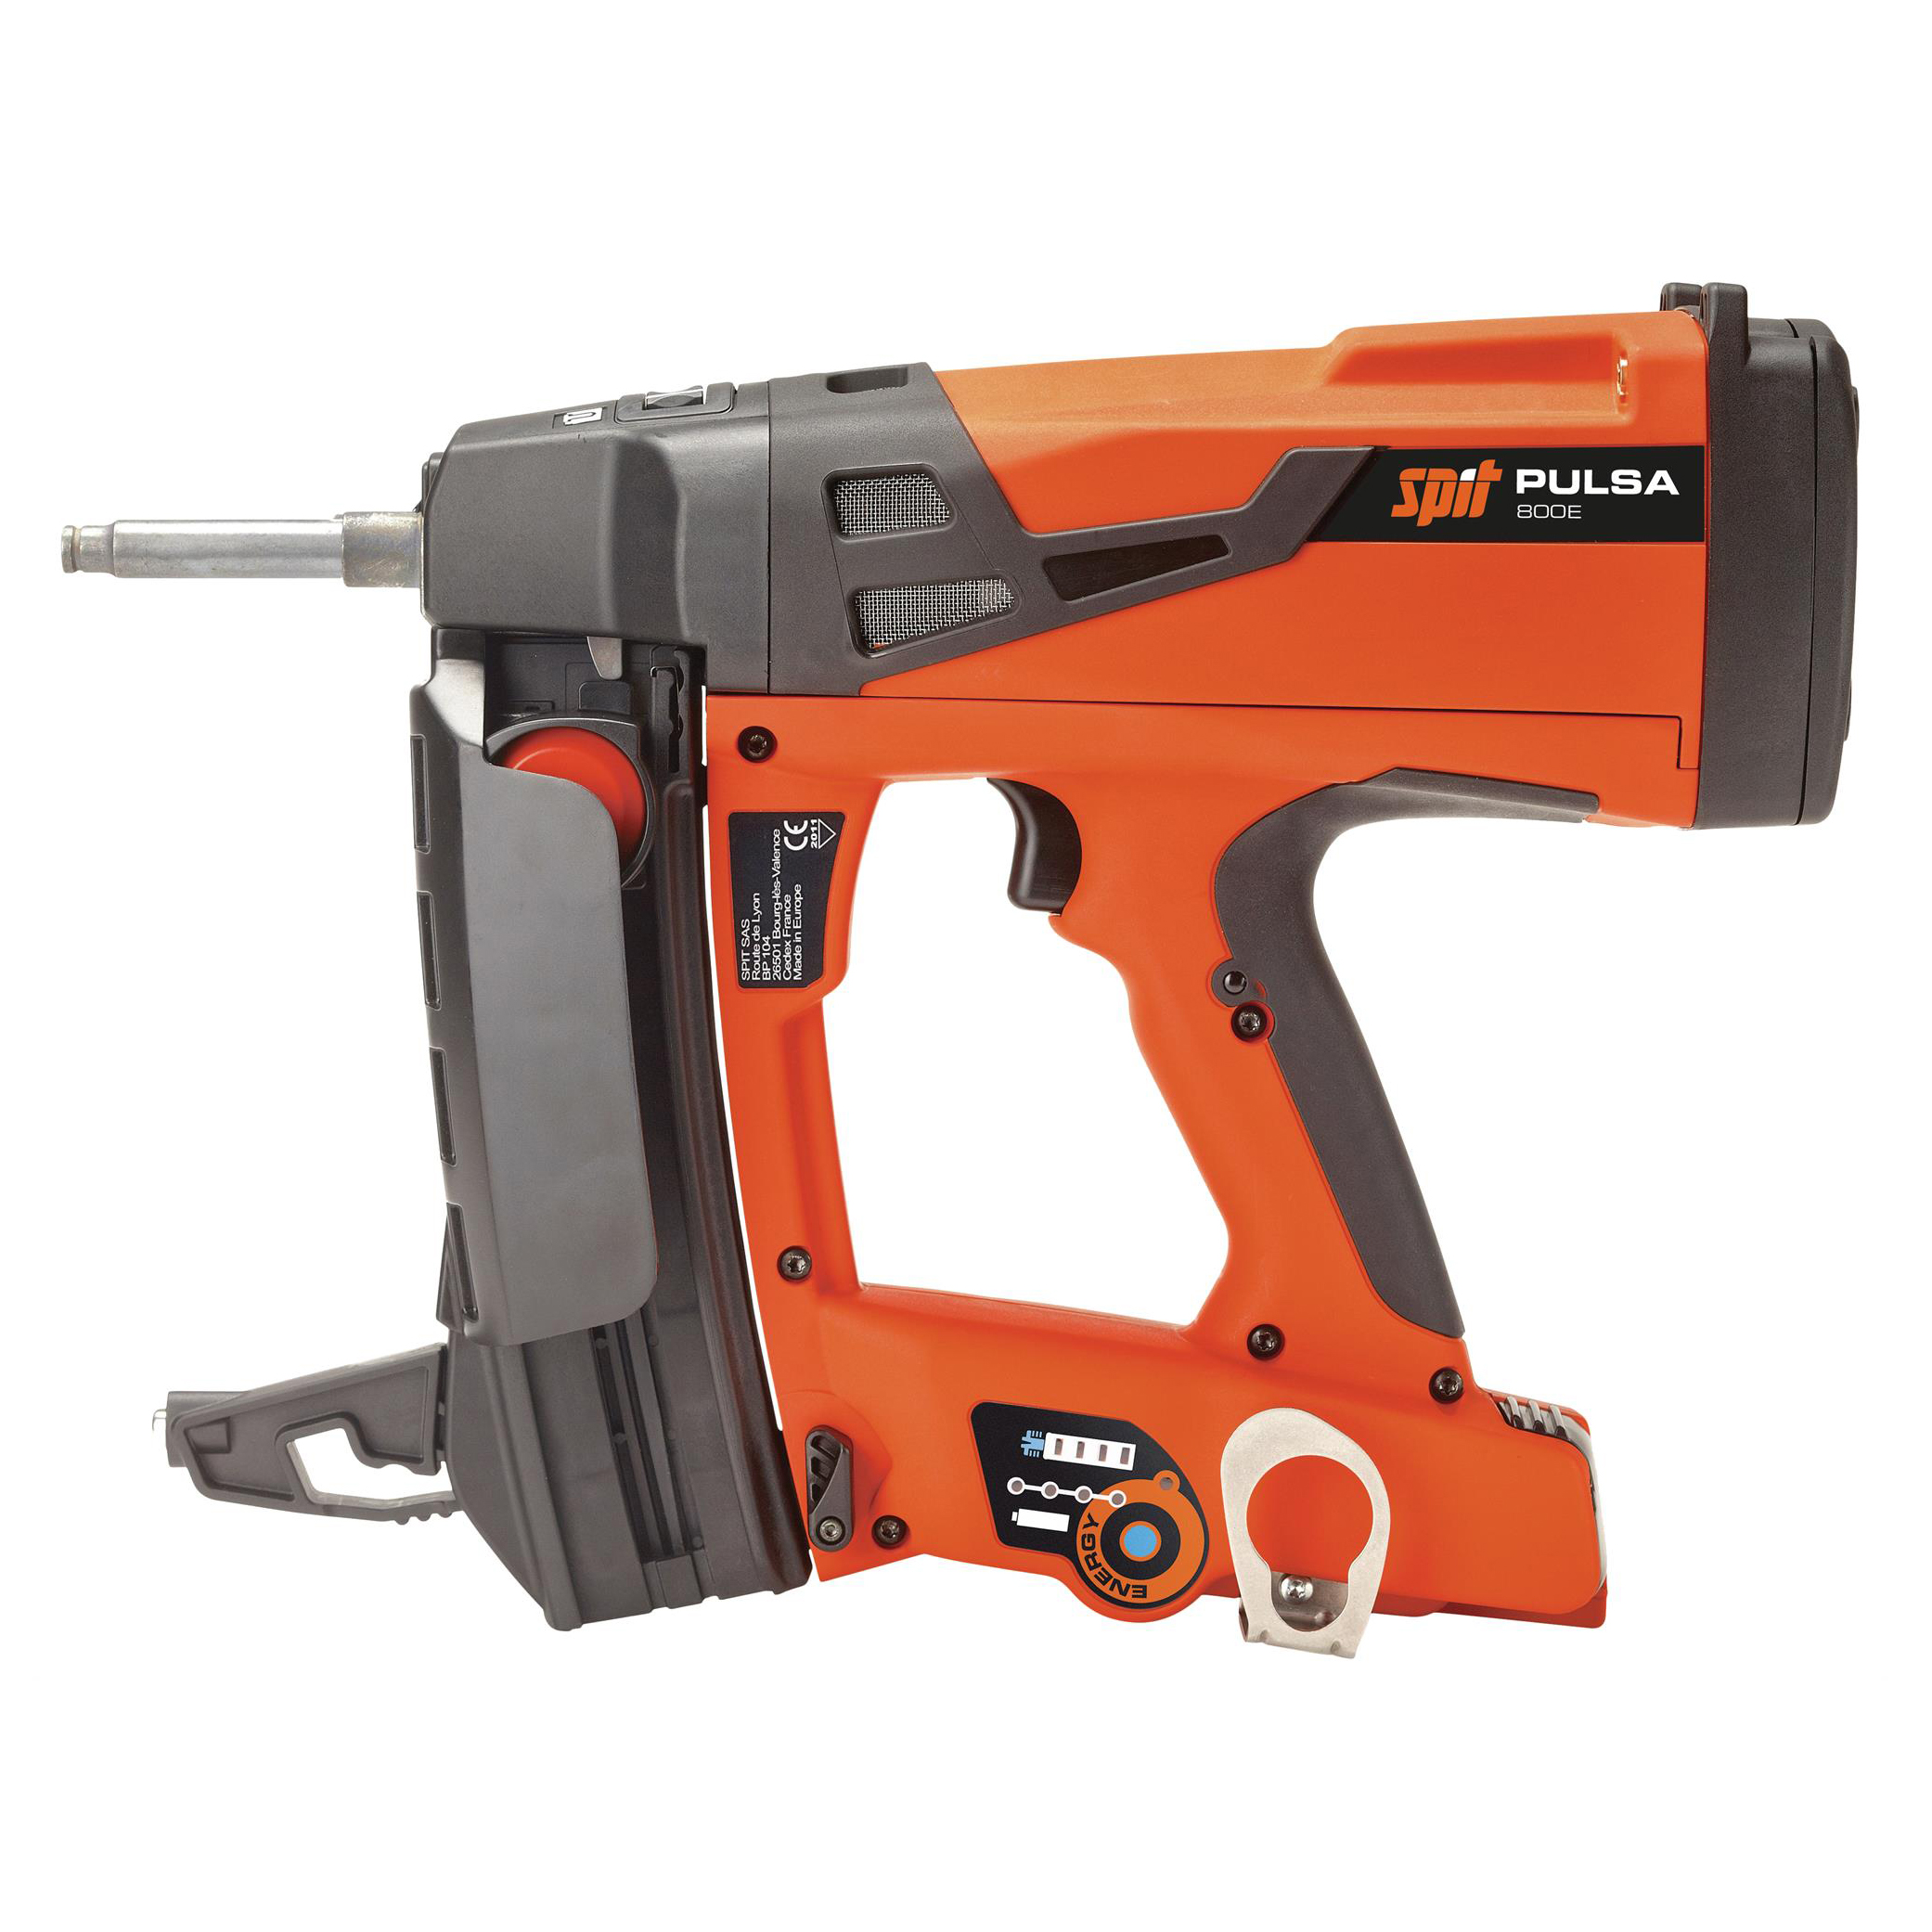 ITW SPIT PULSA 800E CORDLESS GAS NAILER for concrete and steel (018350)